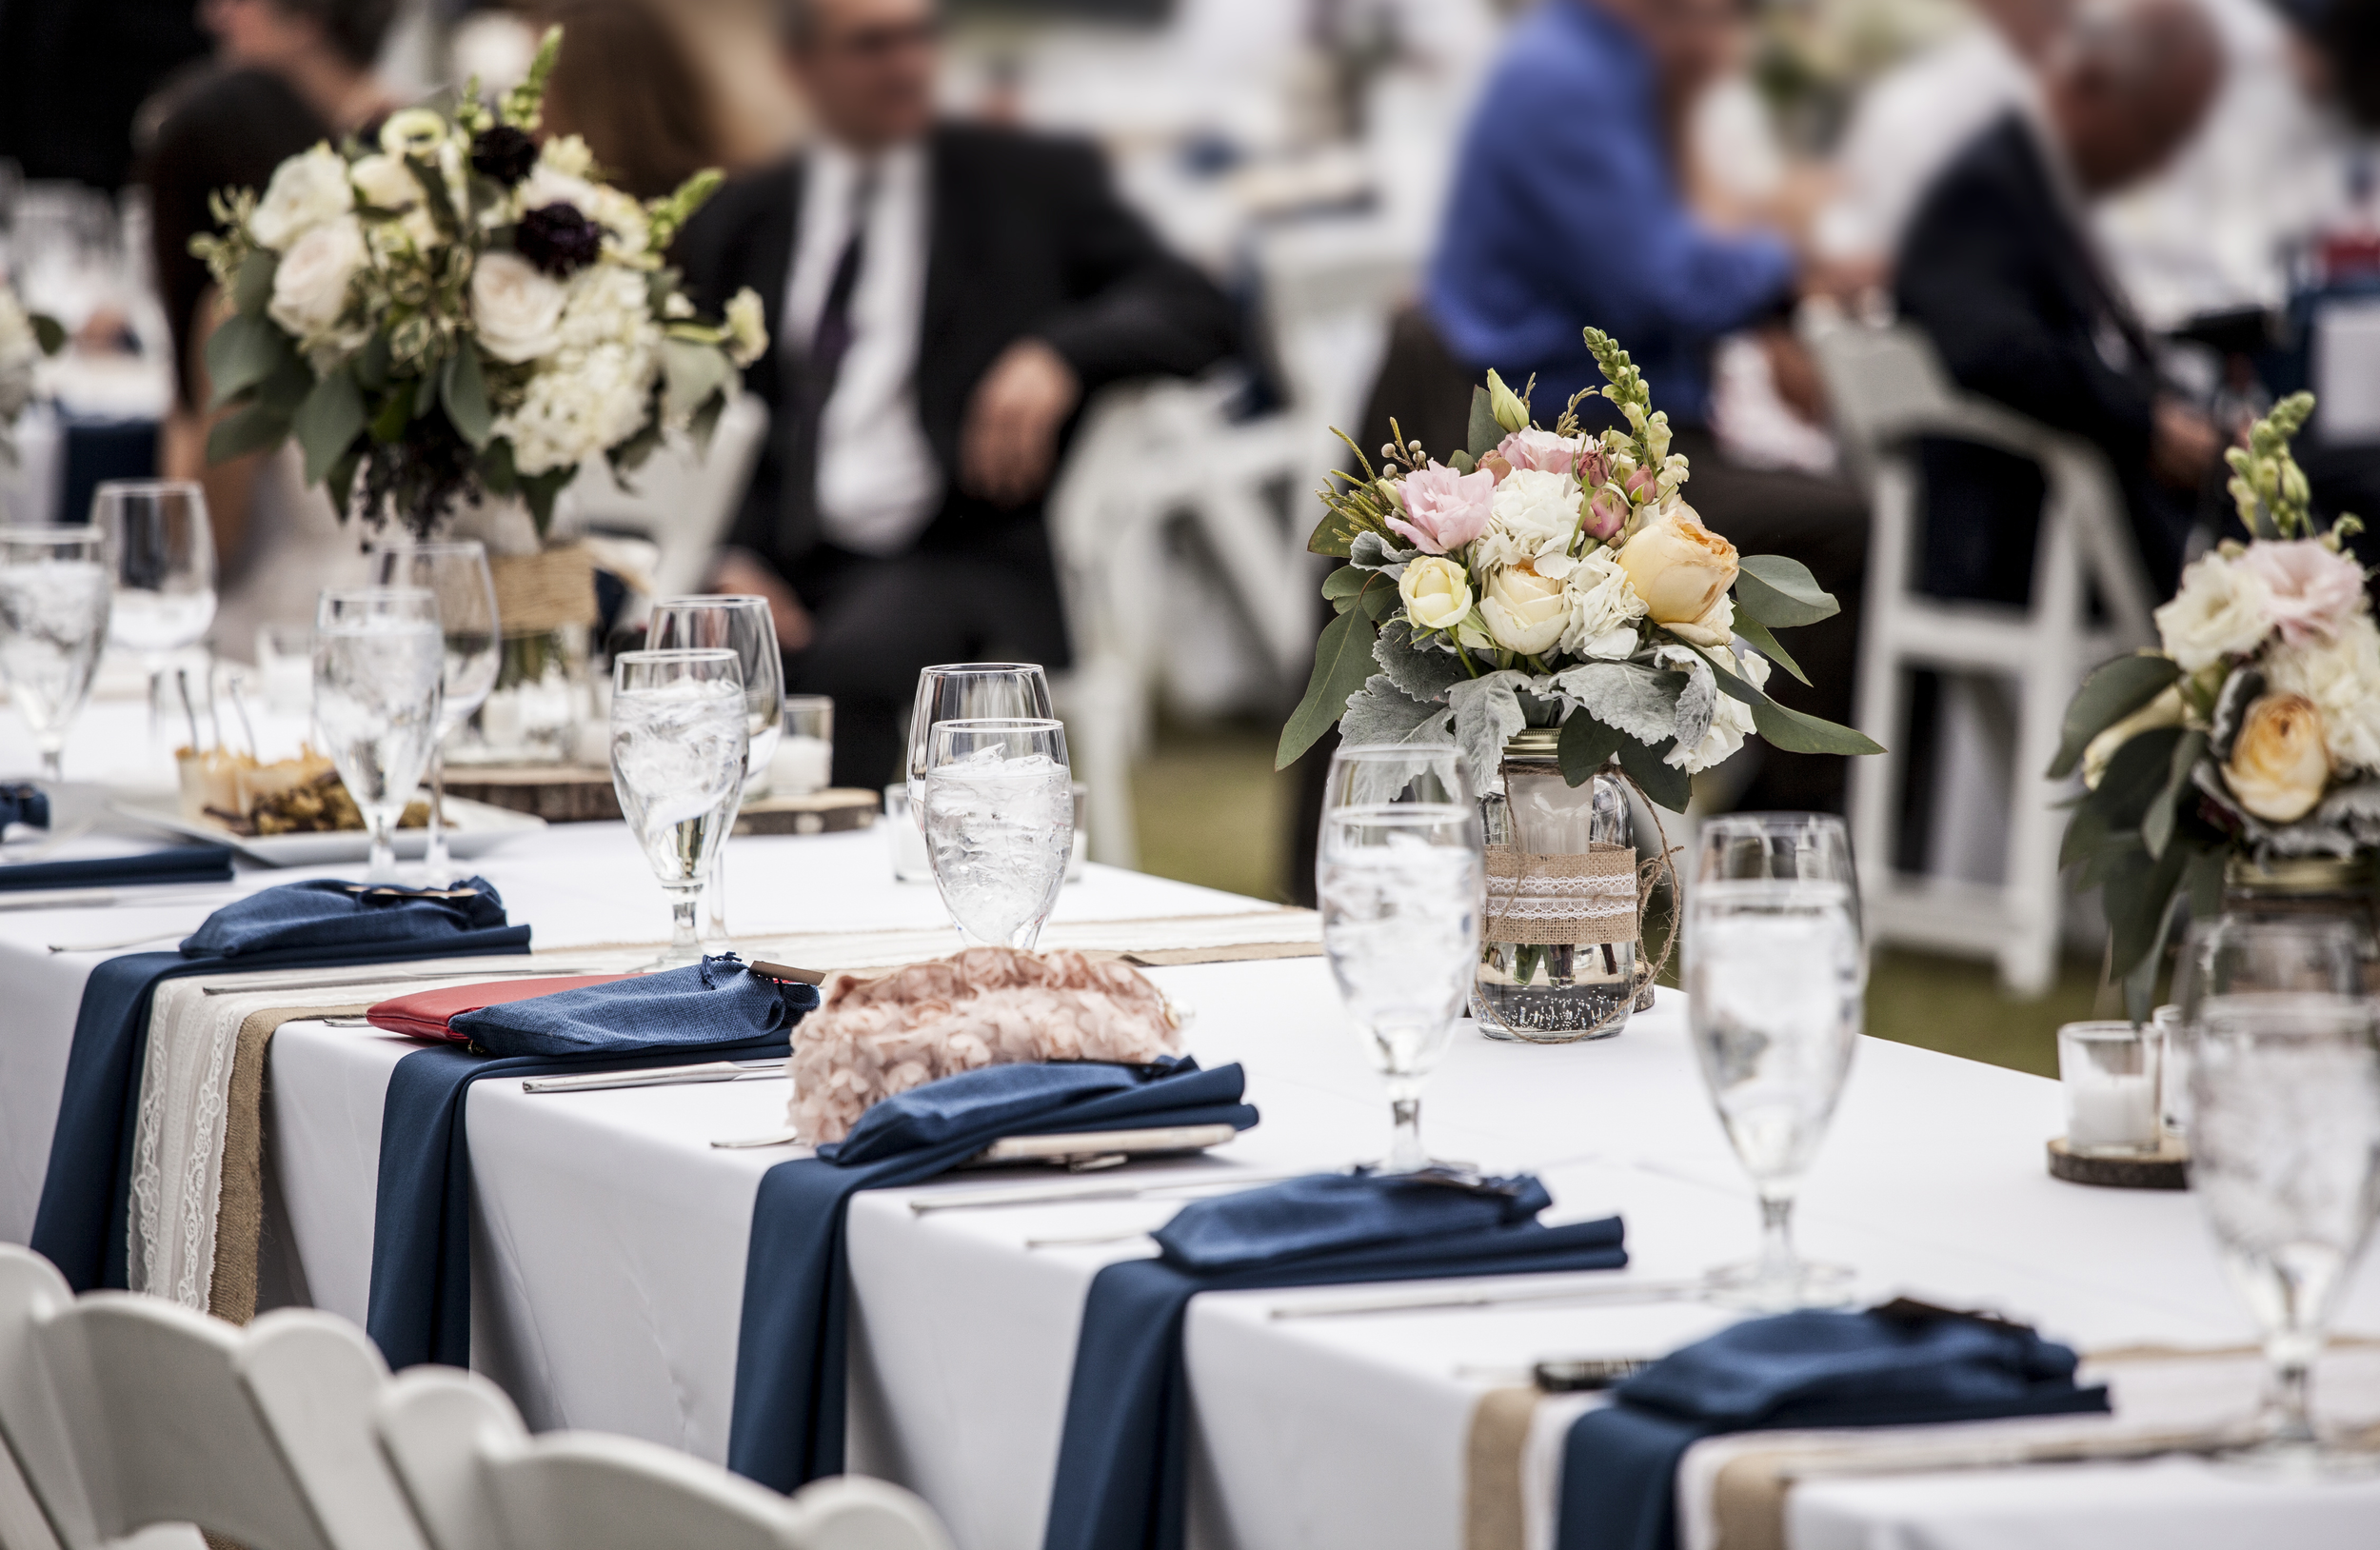 Table set up for wedding reception with people out of focus in background.png